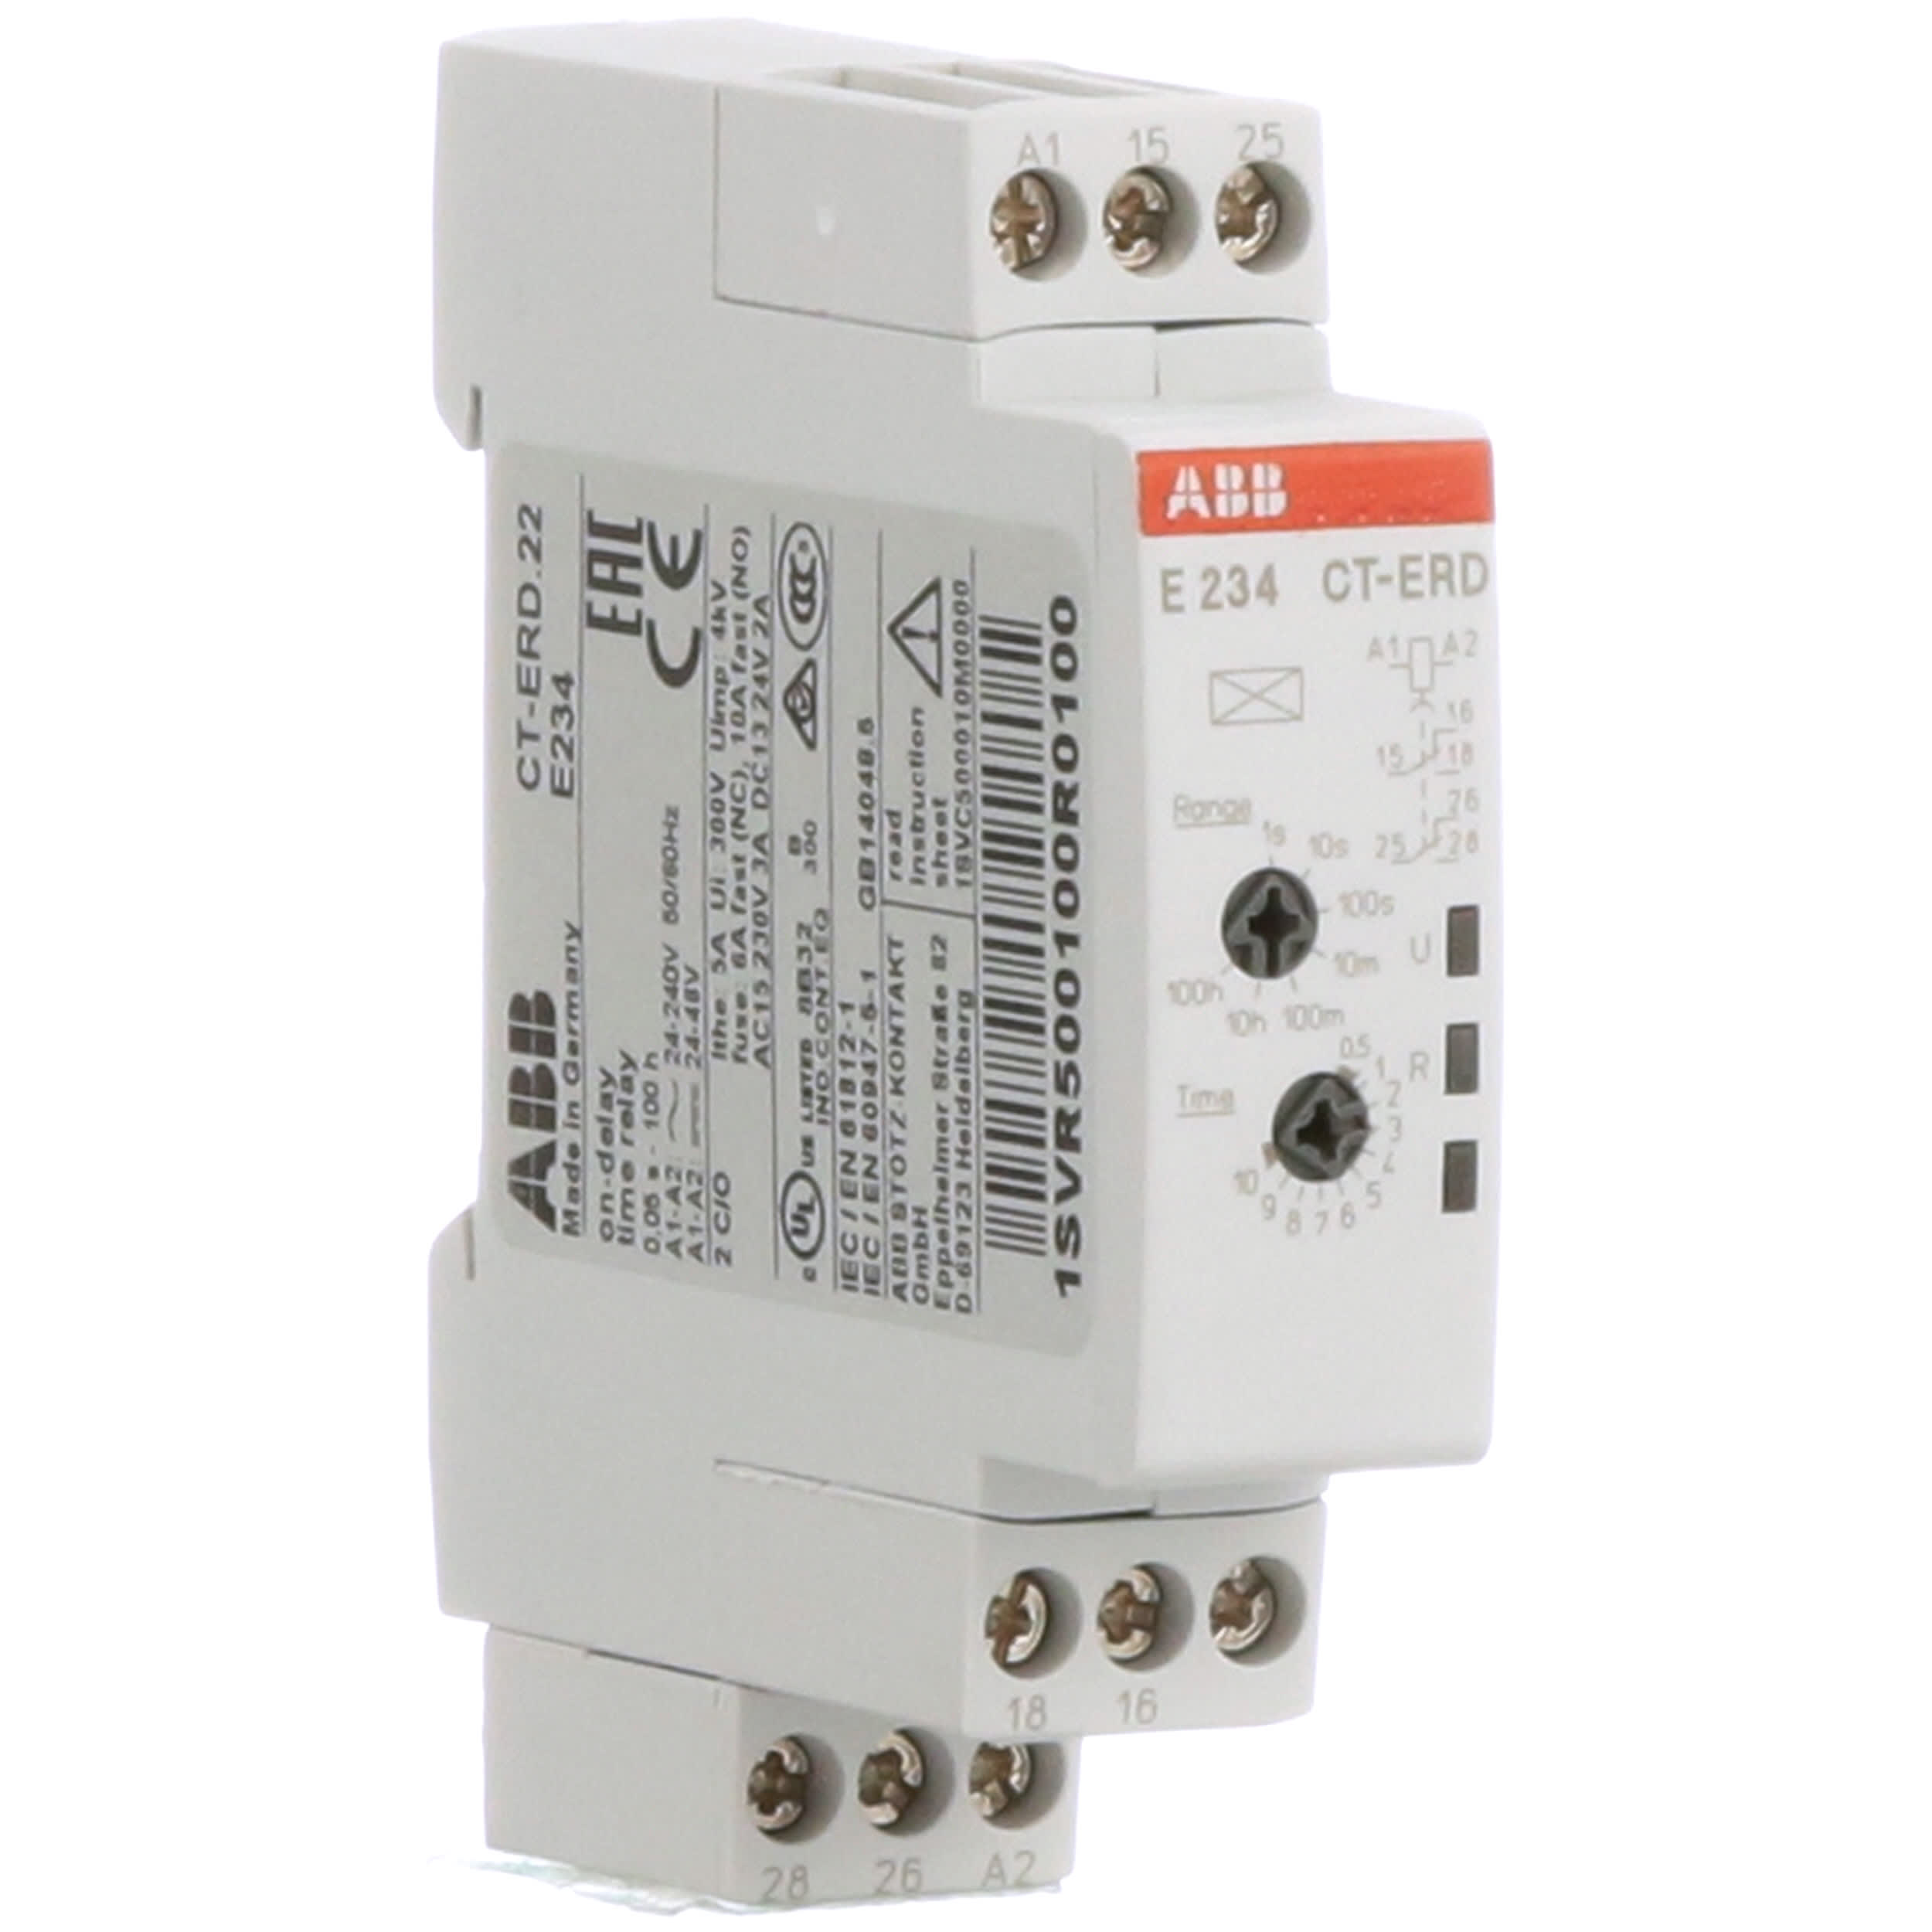 [SCHEMATICS_4HG]  ABB - 1SVR500100R0100 - Time Delay Relay ON-Delay DIN-Rail DPDT - Allied  Electronics & Automation | Abb Solid State Relay Wiring Diagram |  | Allied Electronics